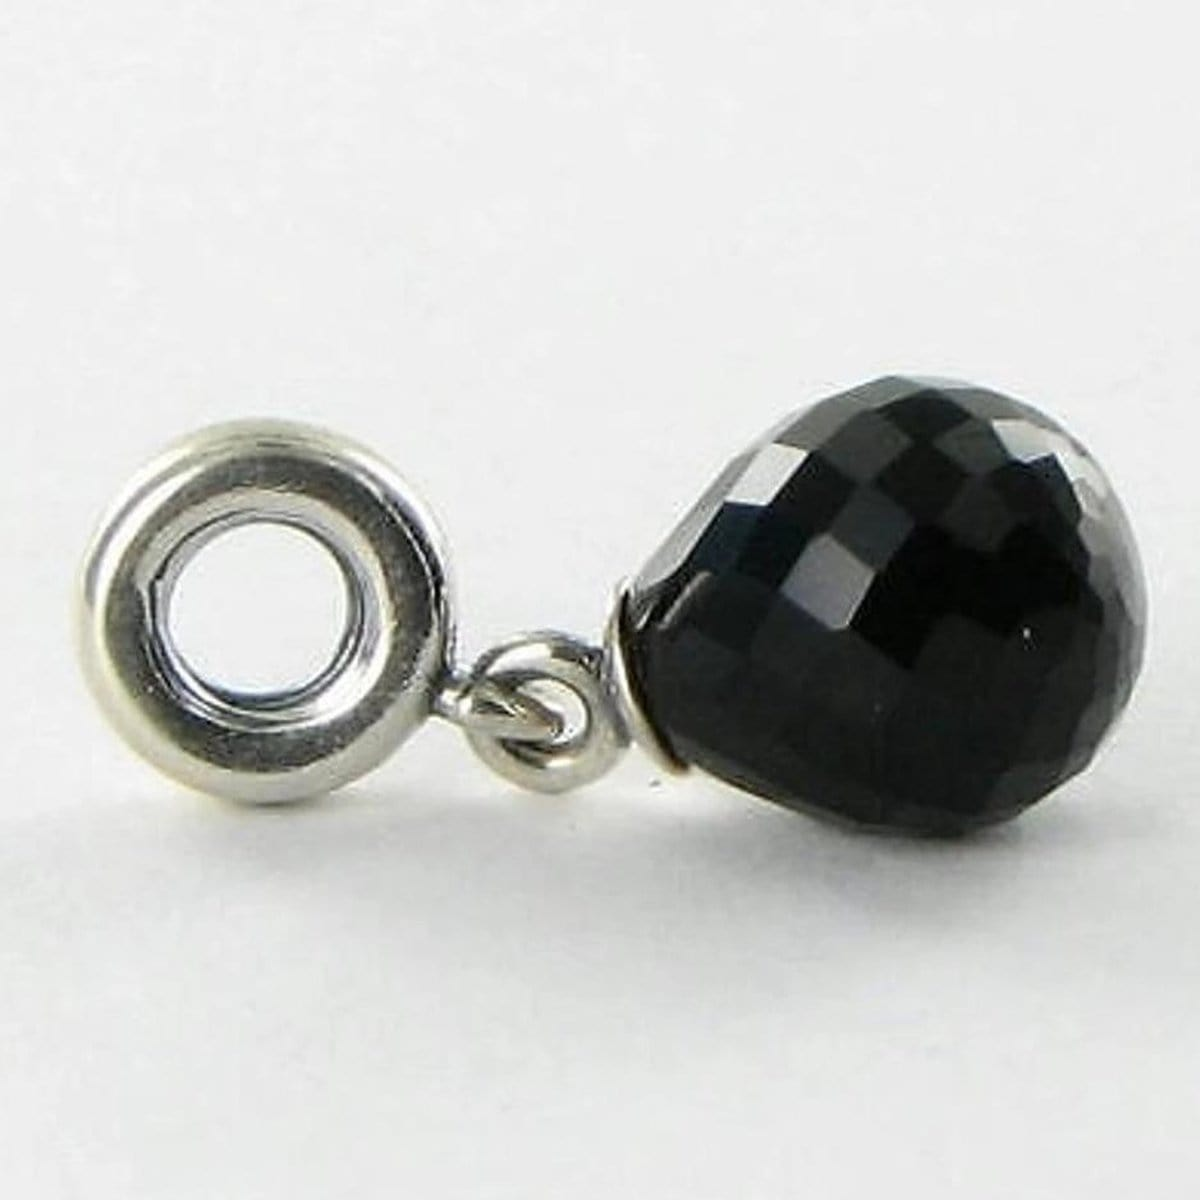 Black Faceted Beauty Murano Glass Charm - 791602CBK-Pandora-Renee Taylor Gallery